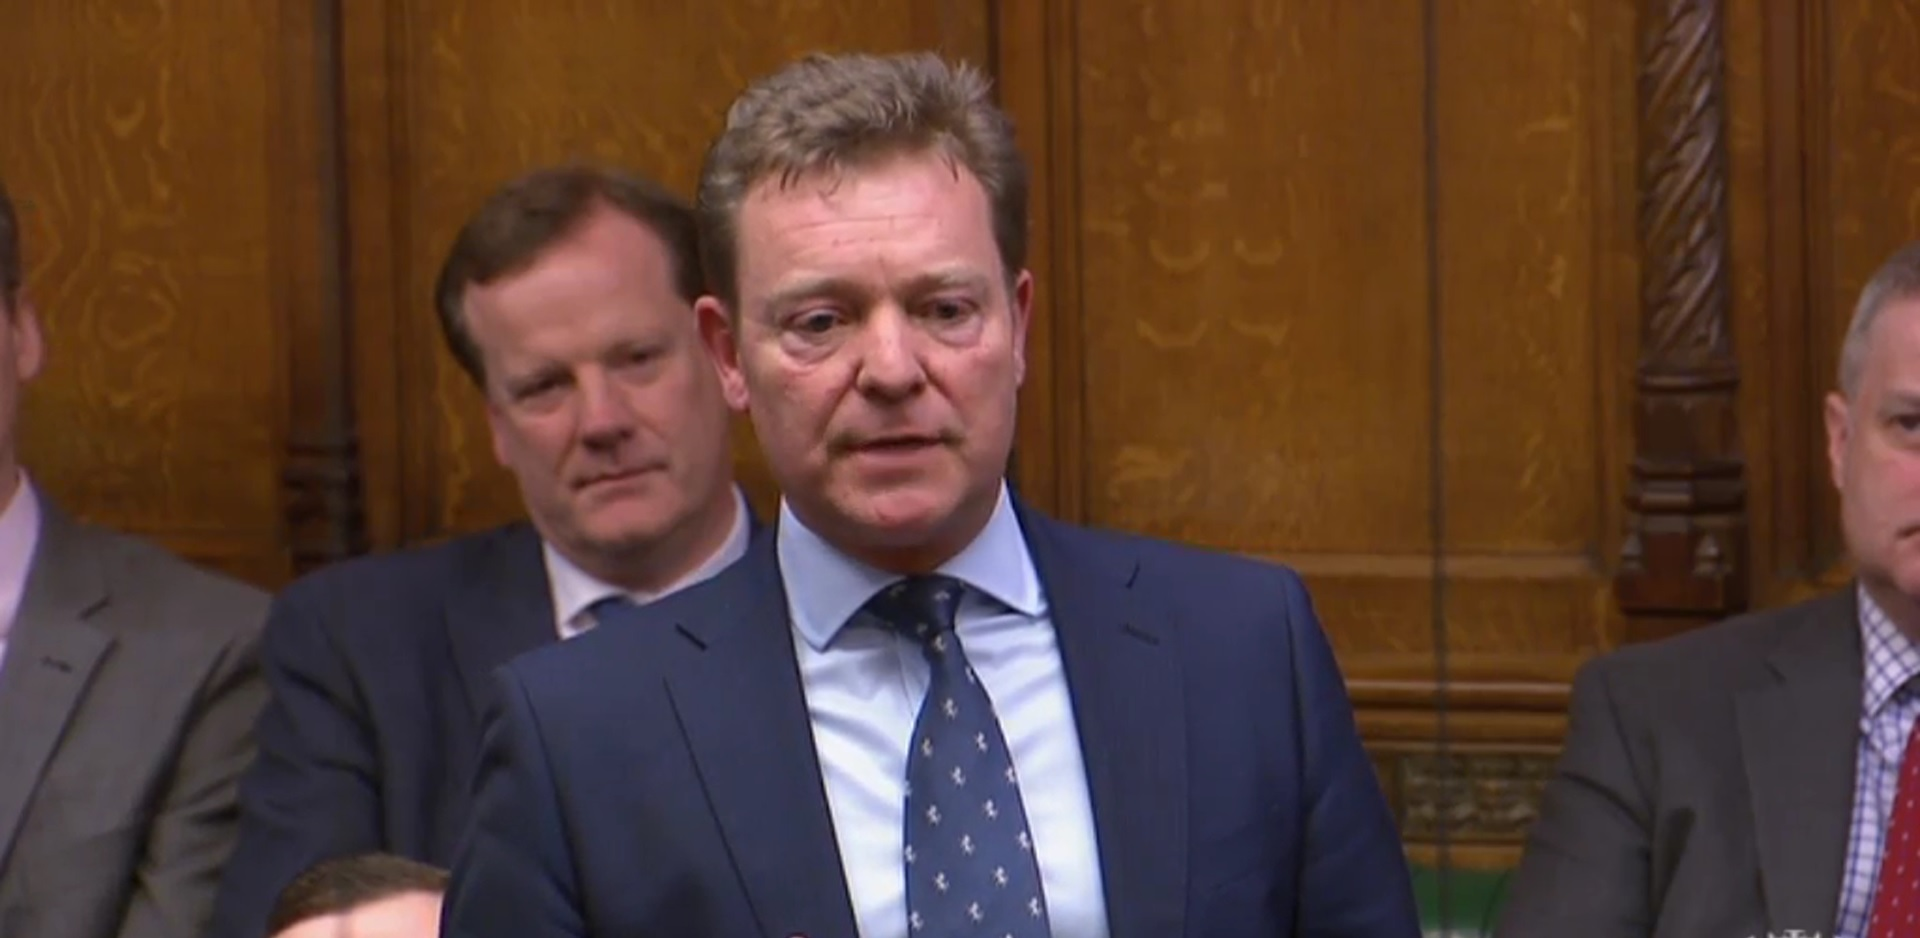 CM at PMQs 13 Feb19.jpg